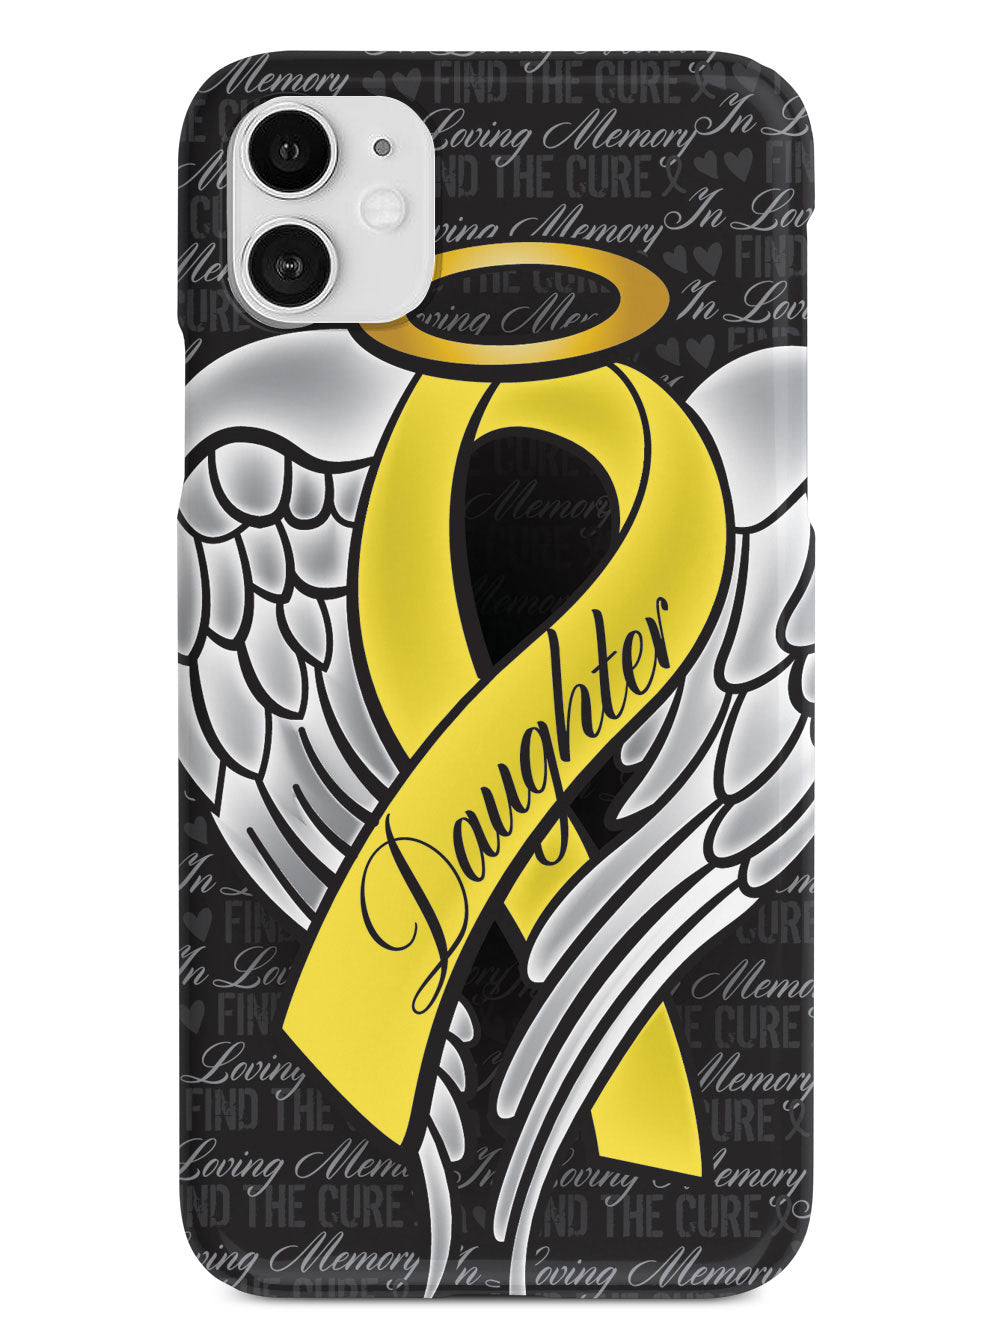 In Loving Memory of My Daughter - Yellow Ribbon Case